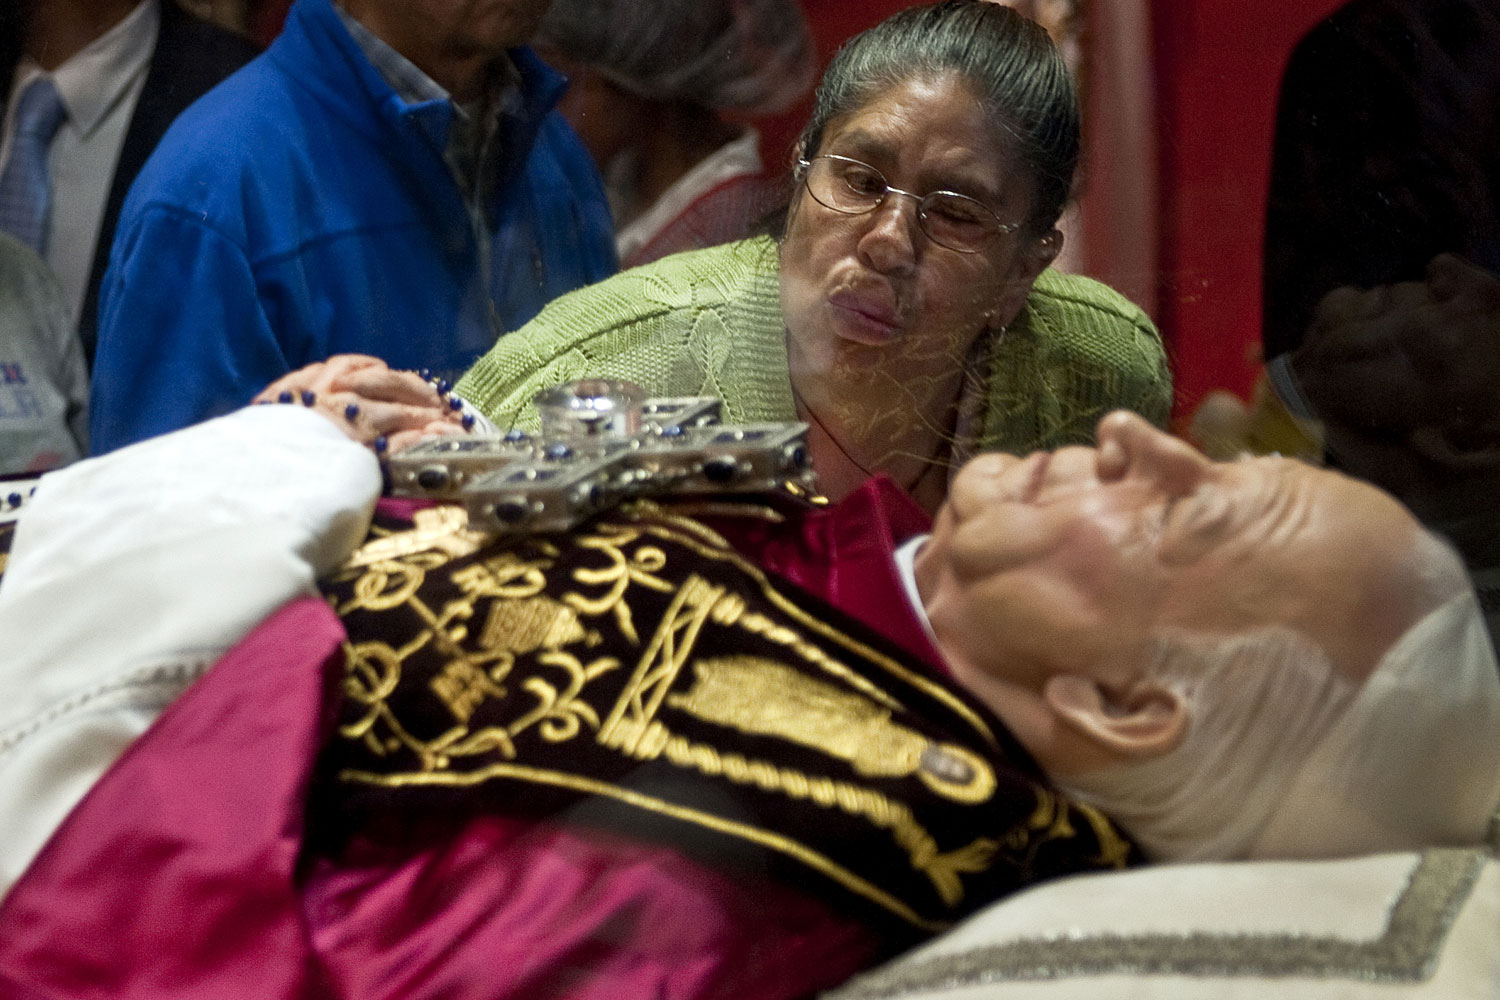 August 25, 2011. A woman kisses the glass box carrying the relics of former Pope John Paul II during a Mass at the Basilica of Guadalupe, in Mexico City. The relics will be in Mexico City for four days.